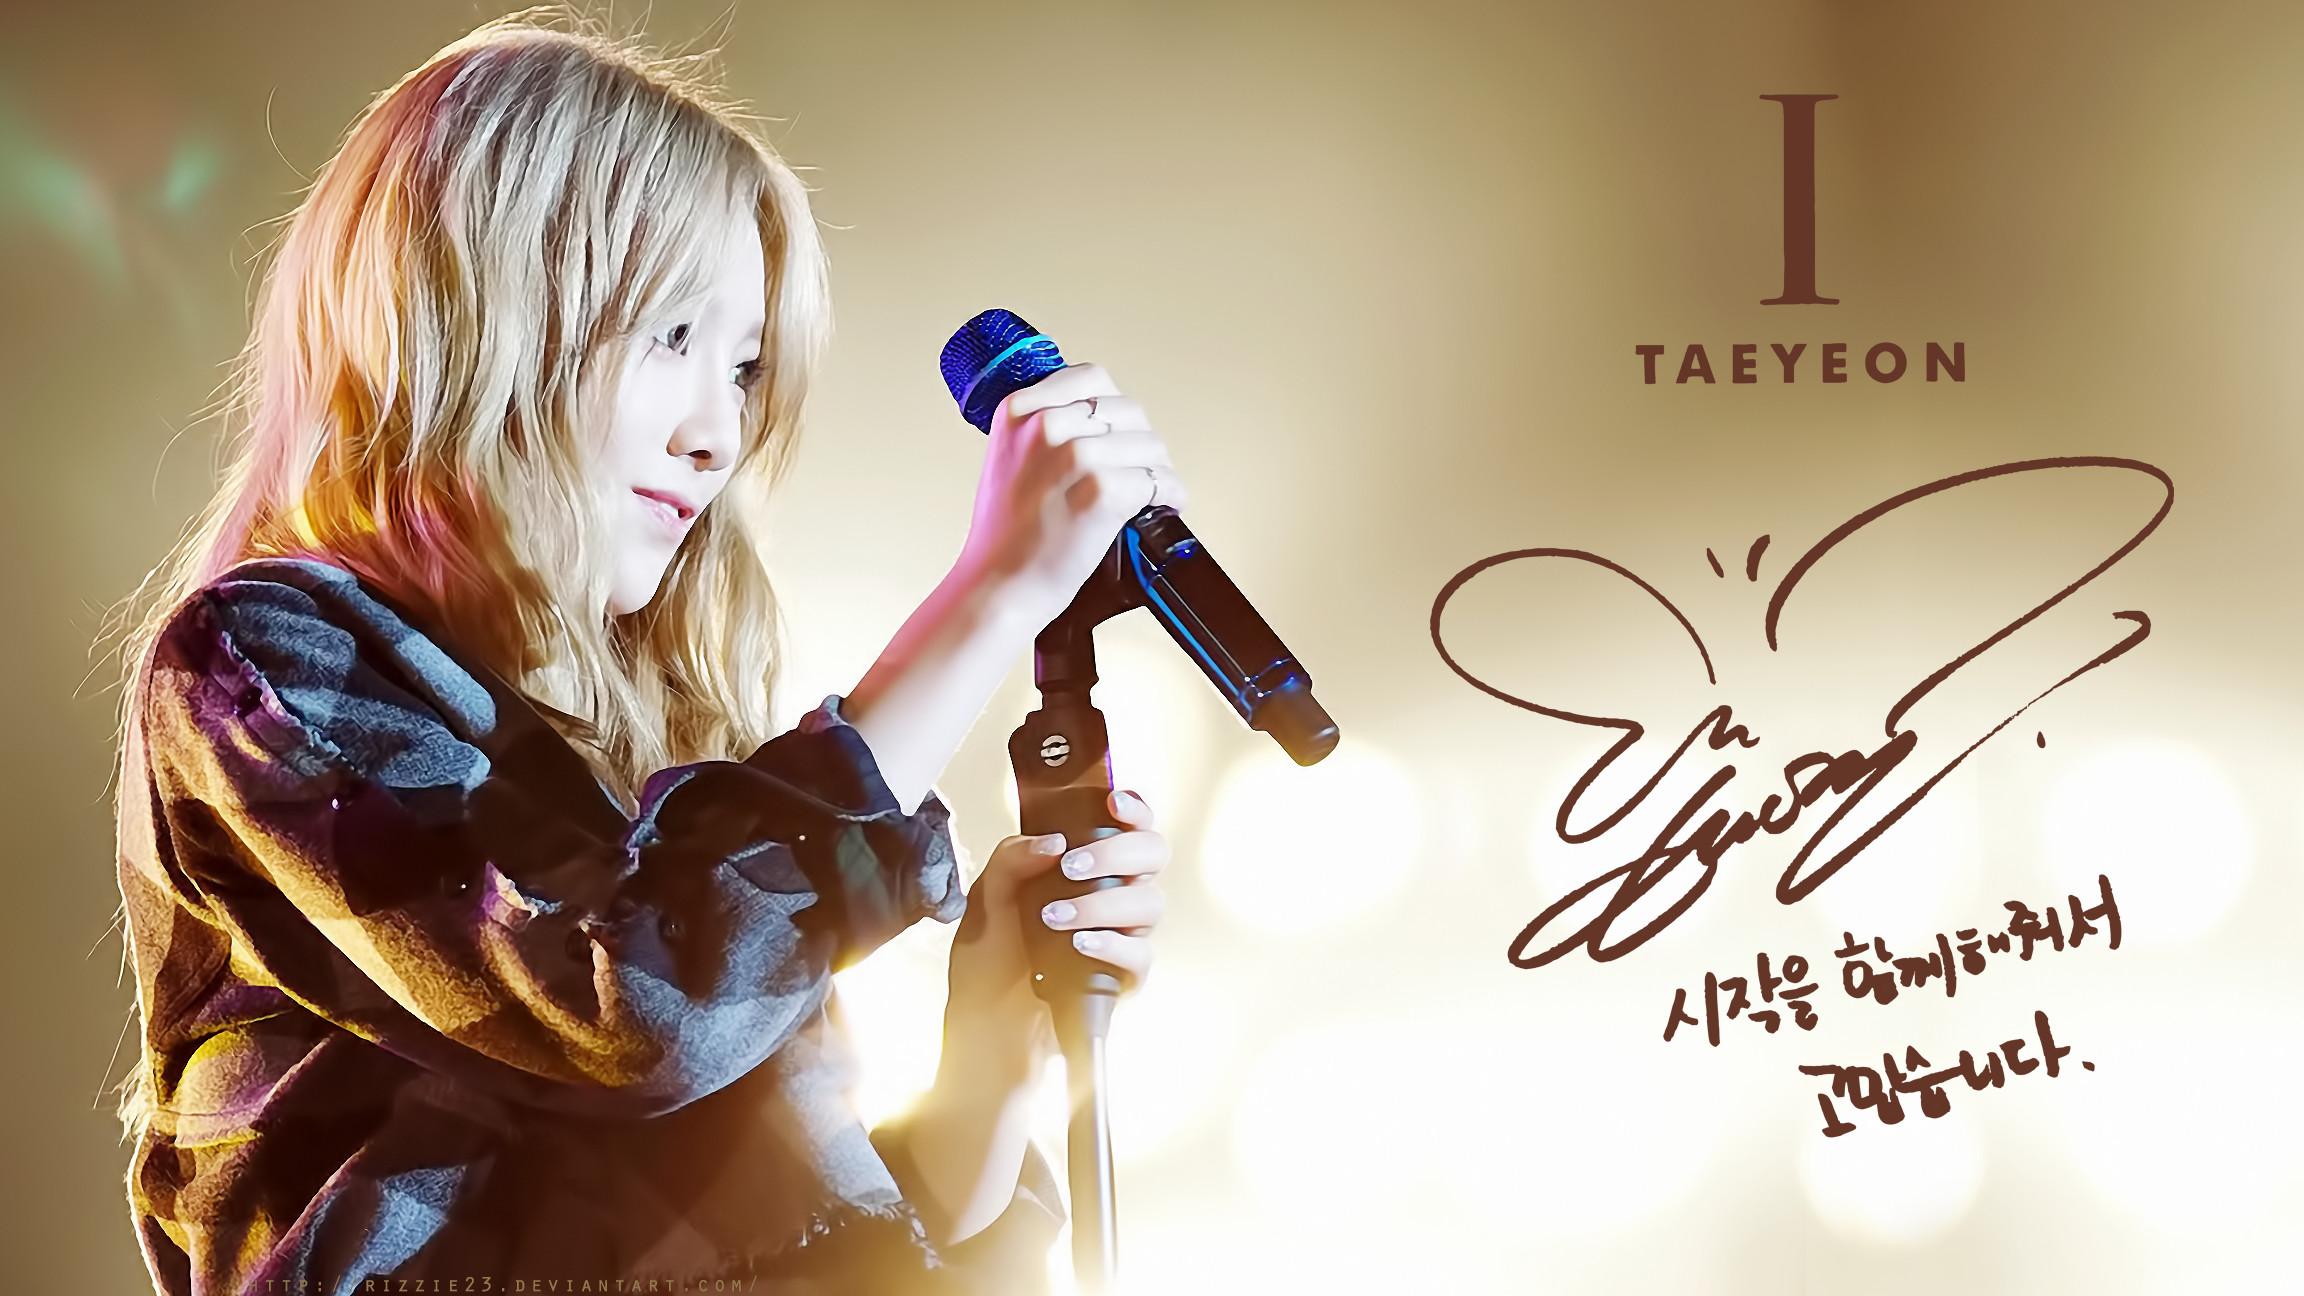 2304x1296 ... Taeyeon I HD Wallpaper 4 by Rizzie23